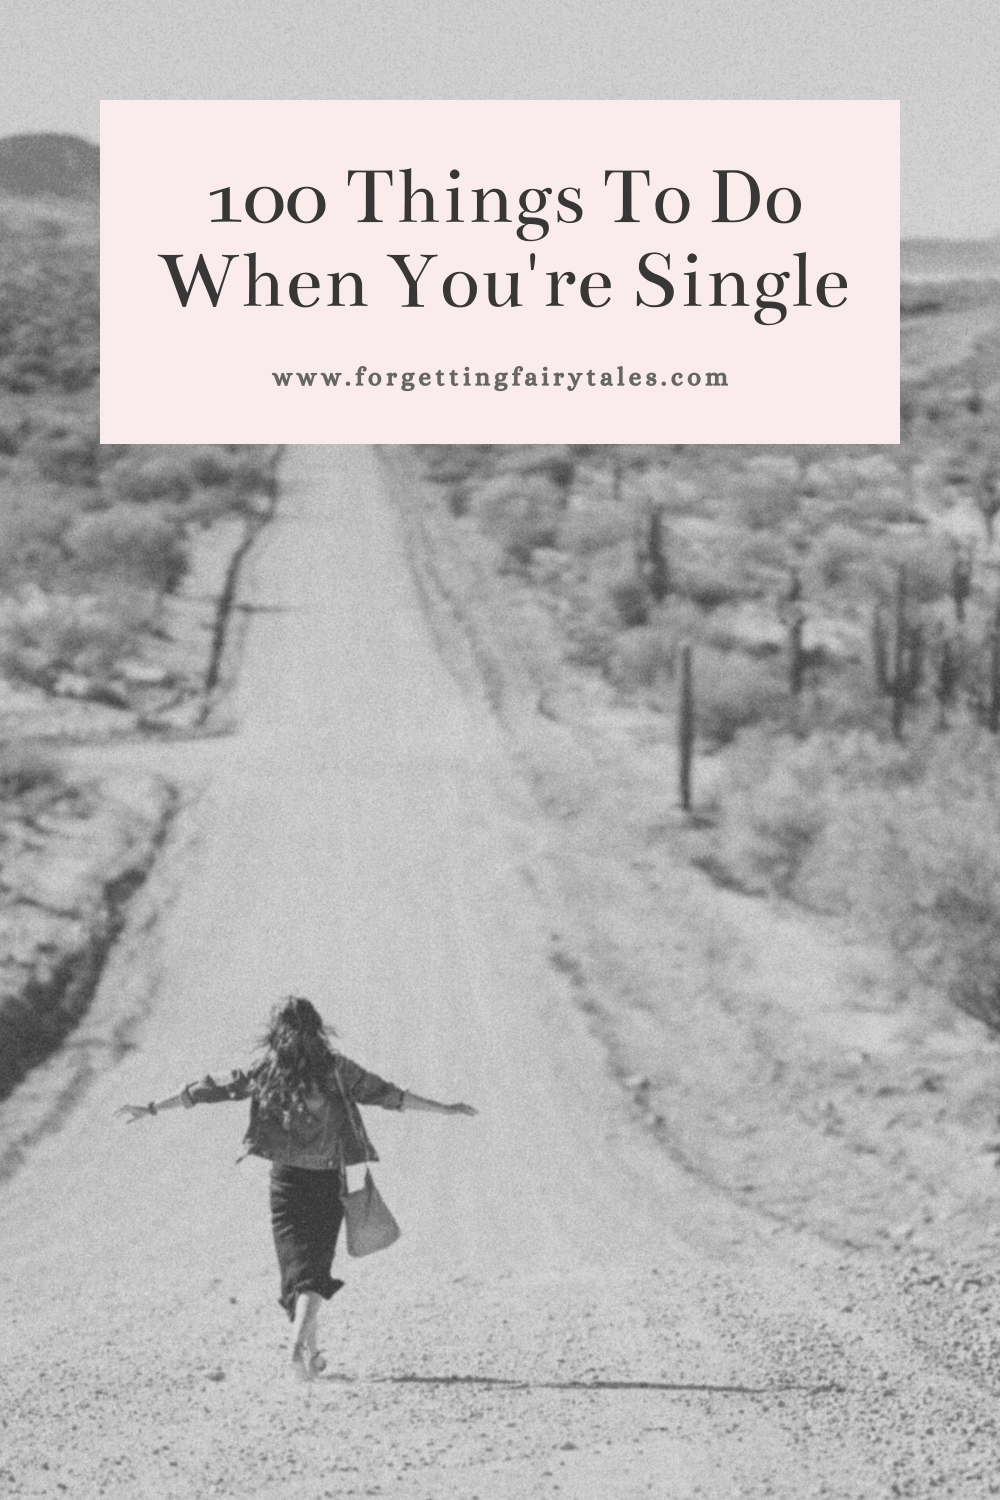 100 Things To Do When You're Single